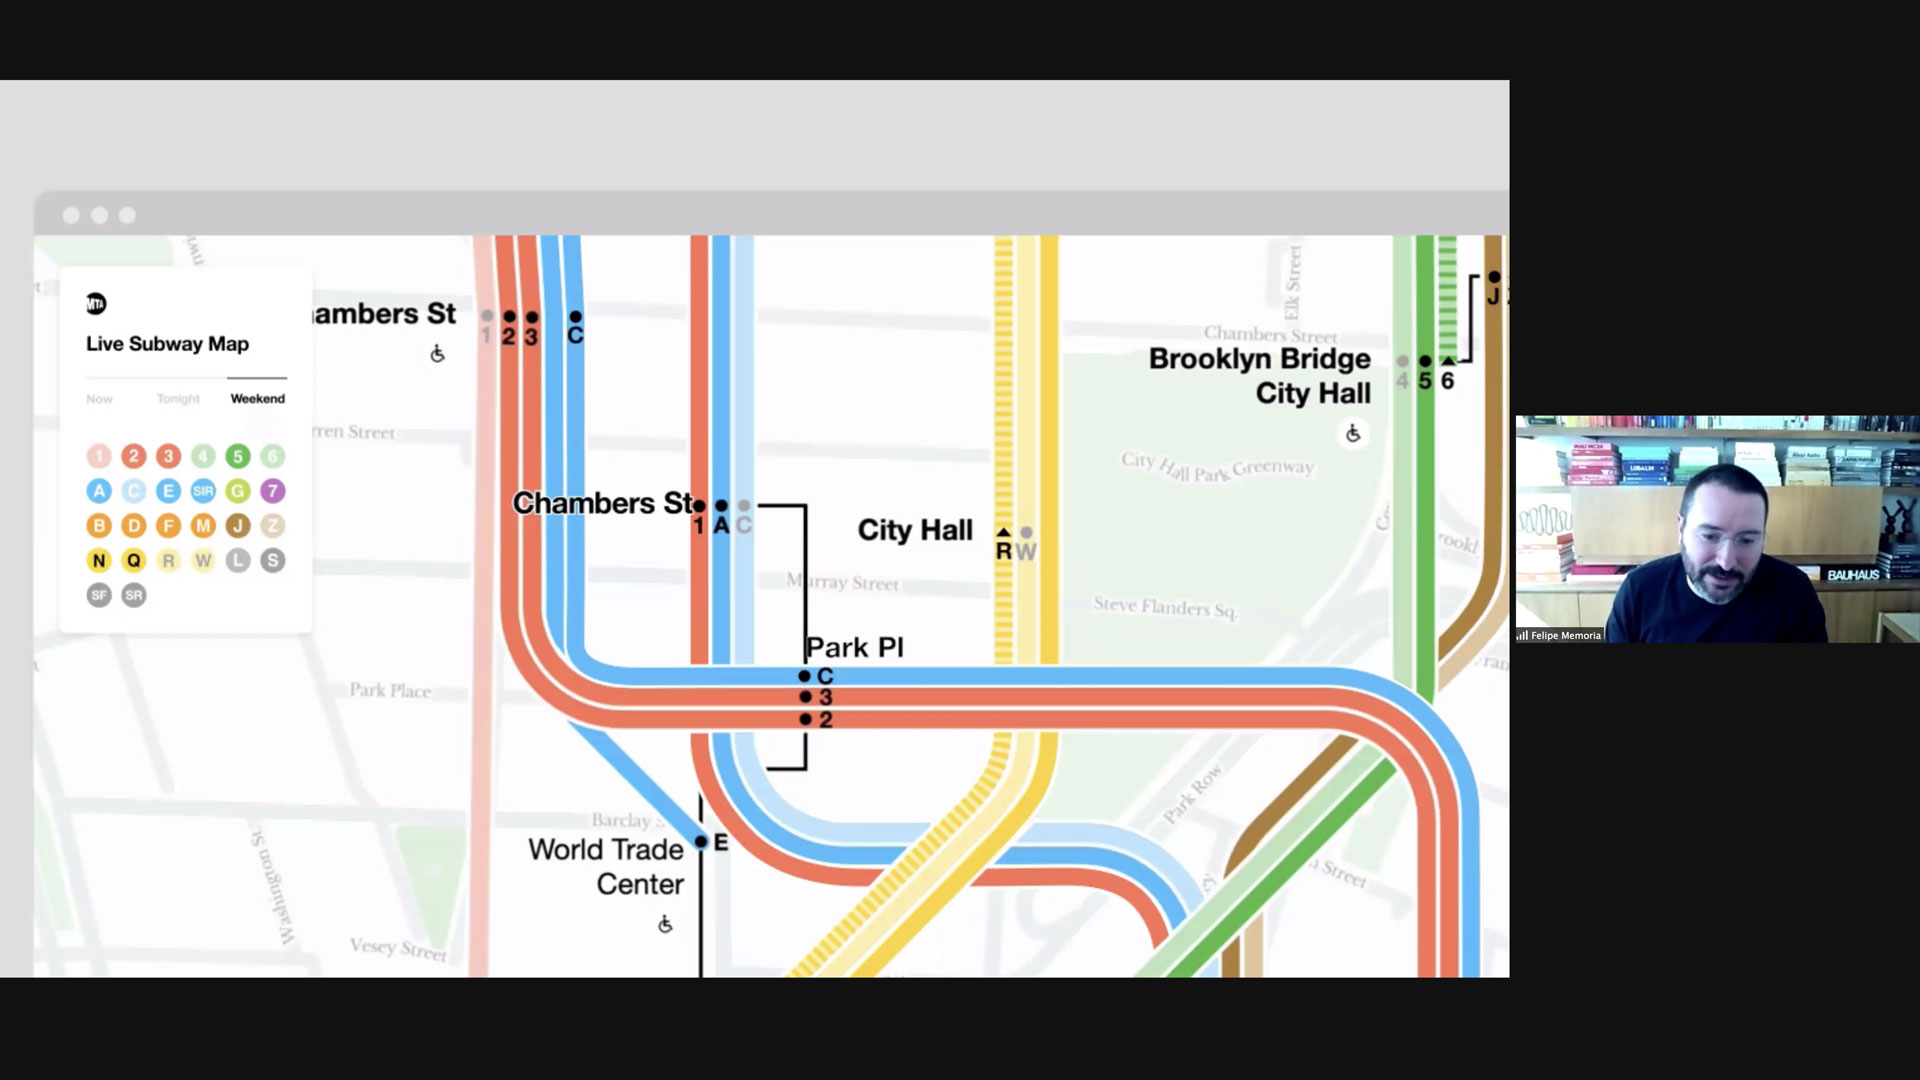 Felipe Memoria and a portion of the NYC subway map